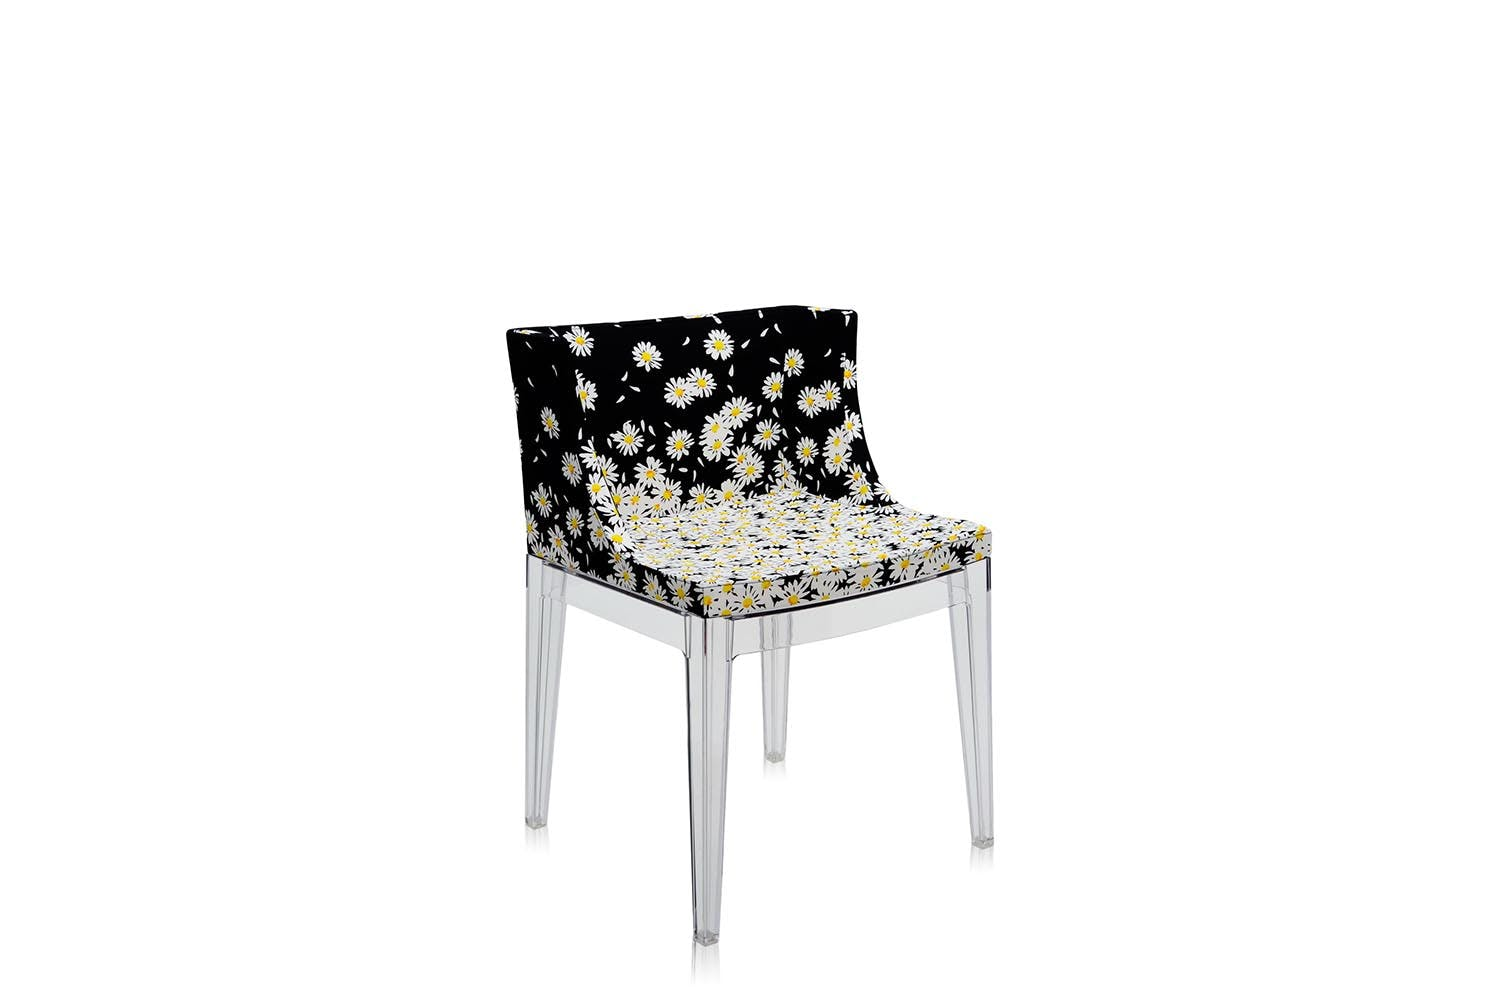 mademoiselle chair with arms by philippe starck for kartell  - transparentdaisies